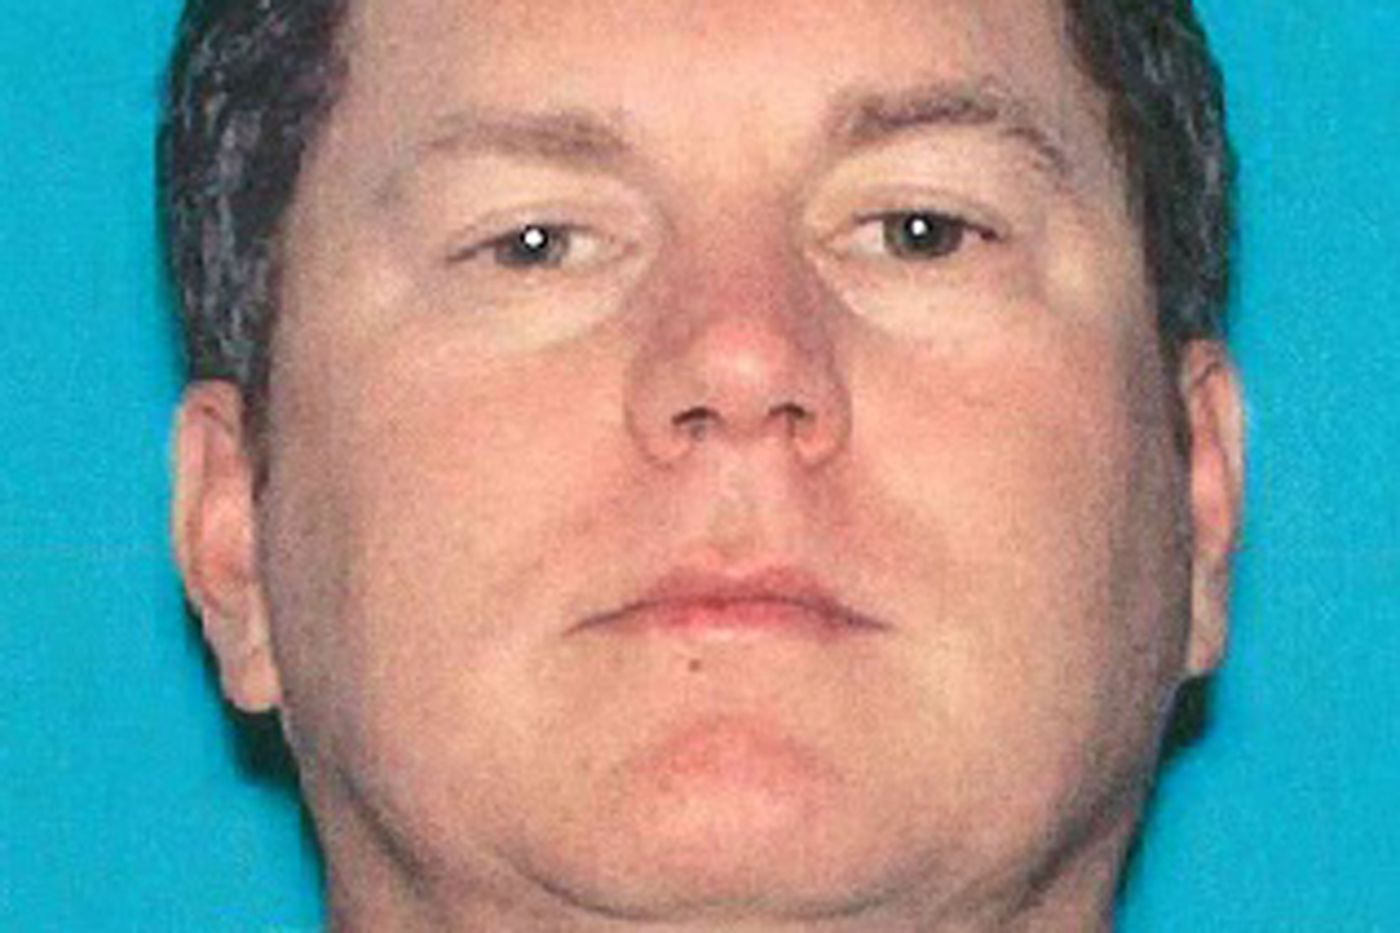 Moorestown financial adviser stole $890,000 from client, authorities say